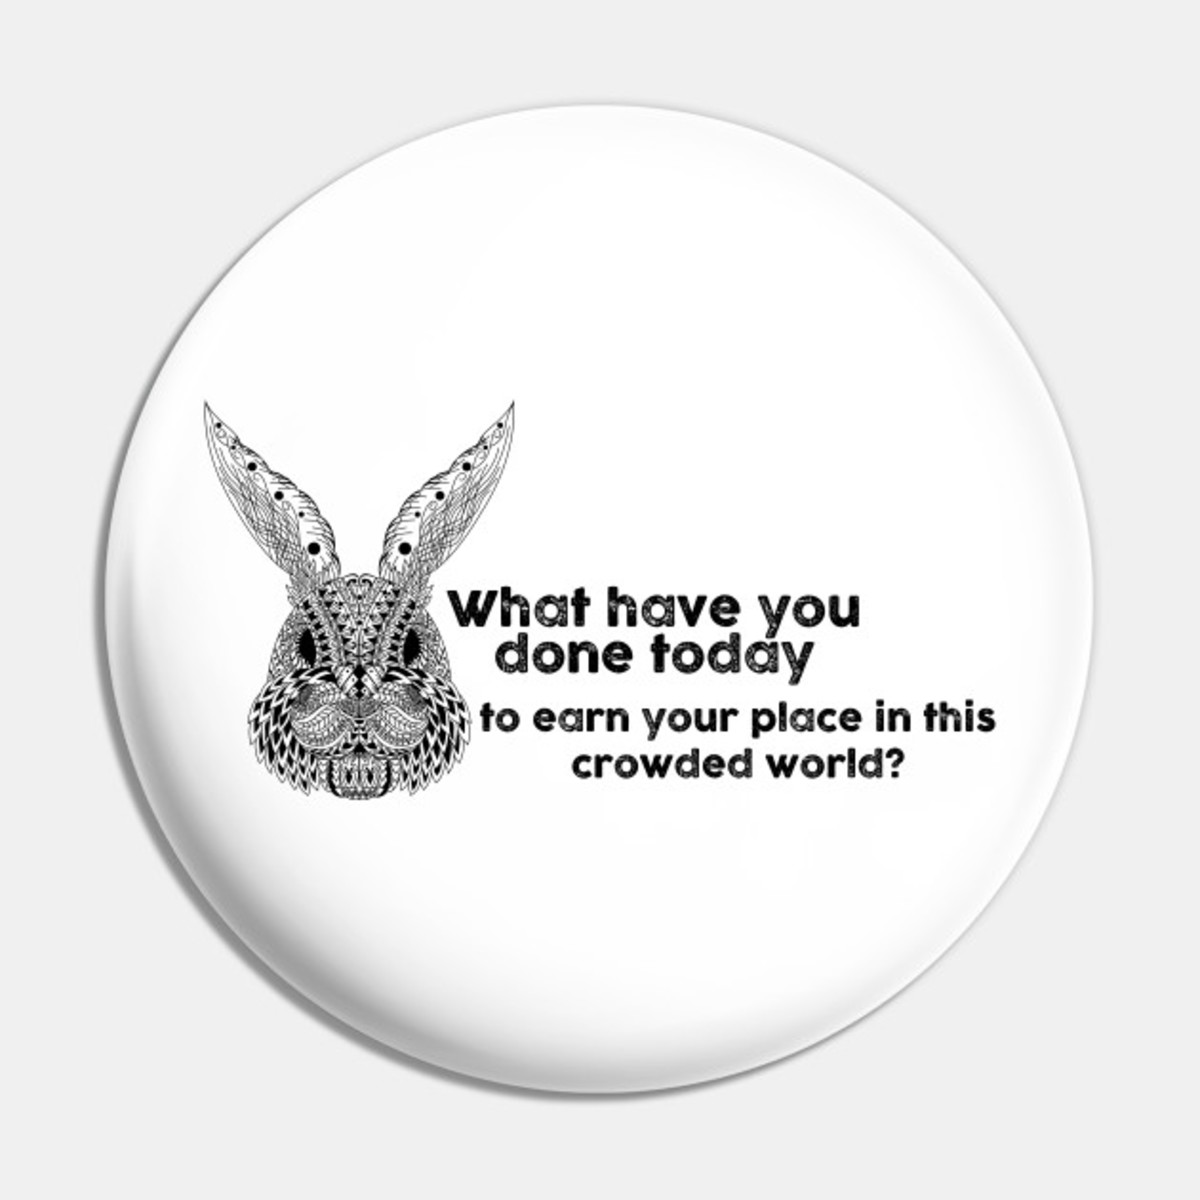 earn-your-place